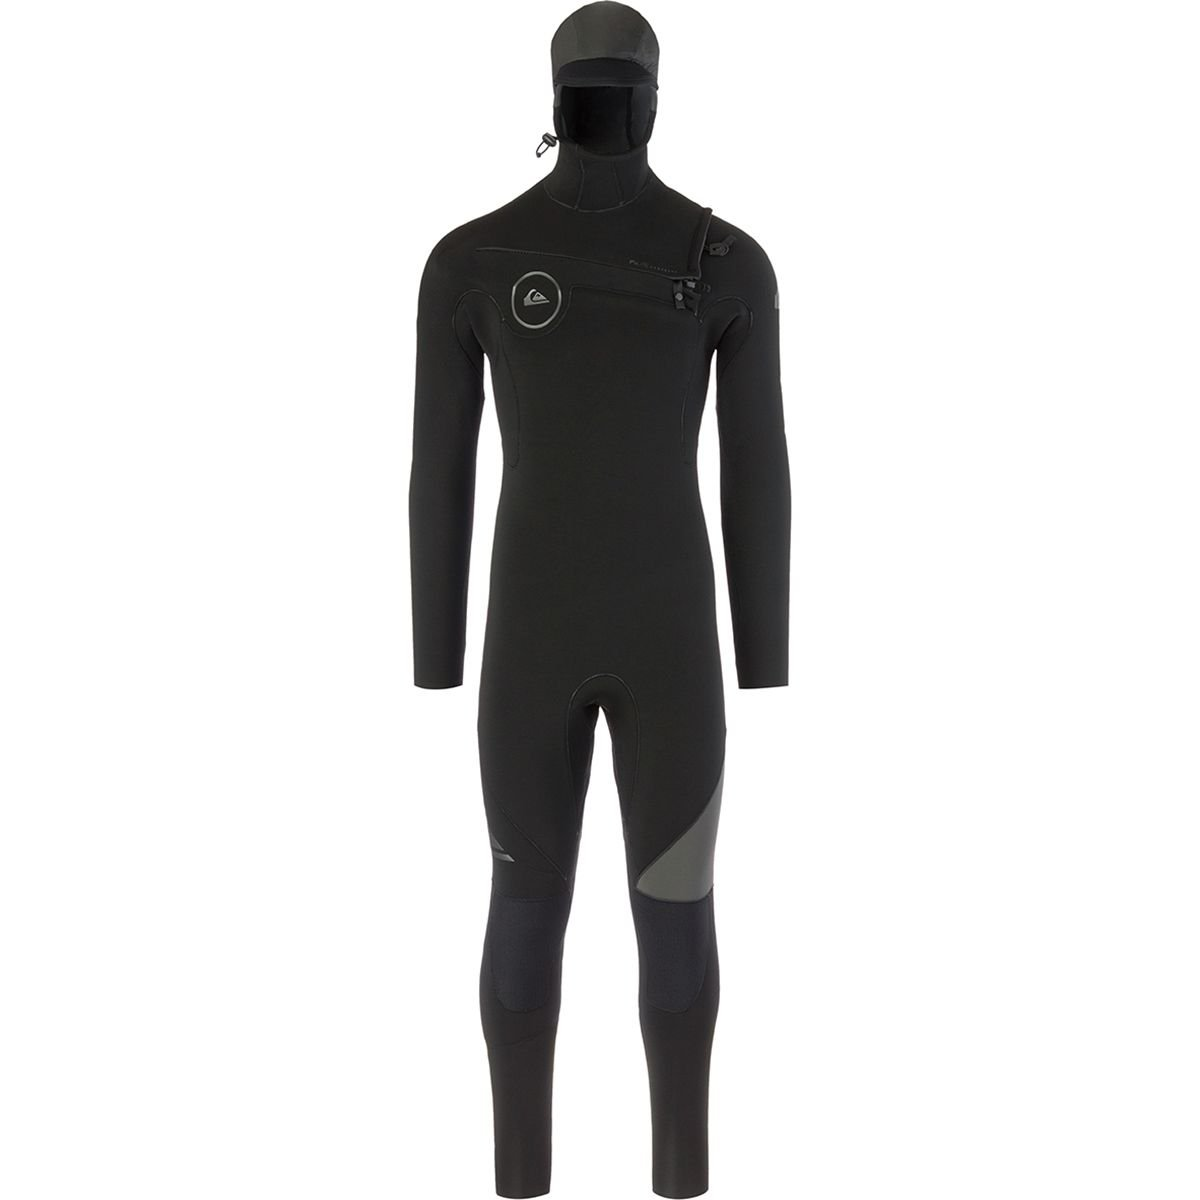 Quiksilver 5/4/3mm Syncro Series Chest Zip GBS Hooded Men's Full Wetsuits - Black/Jet Black/Medium by Quiksilver